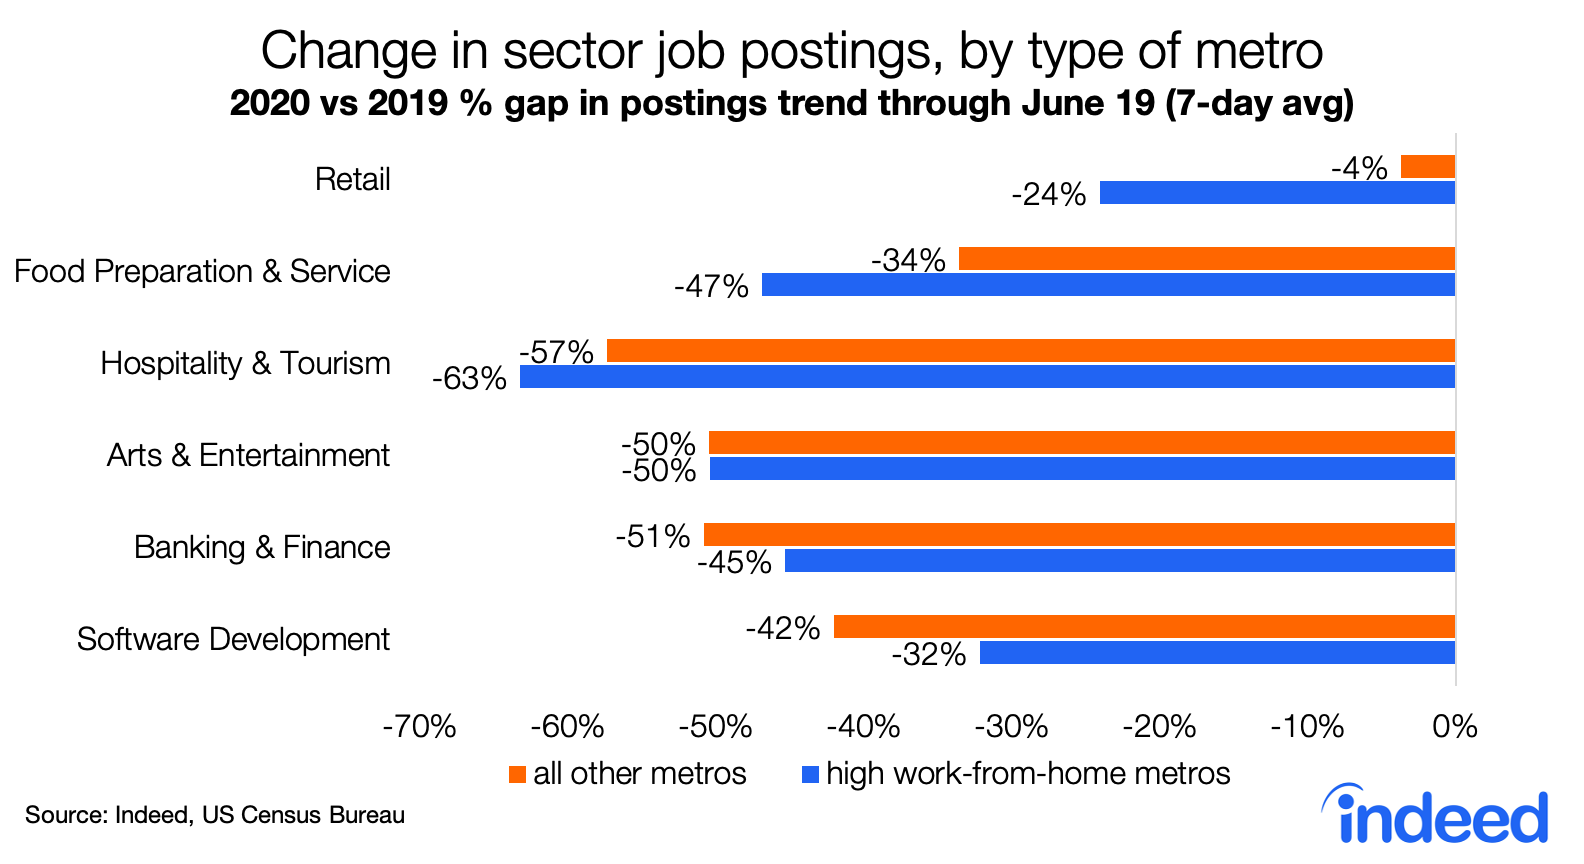 Change in sector job postings, by type of metro